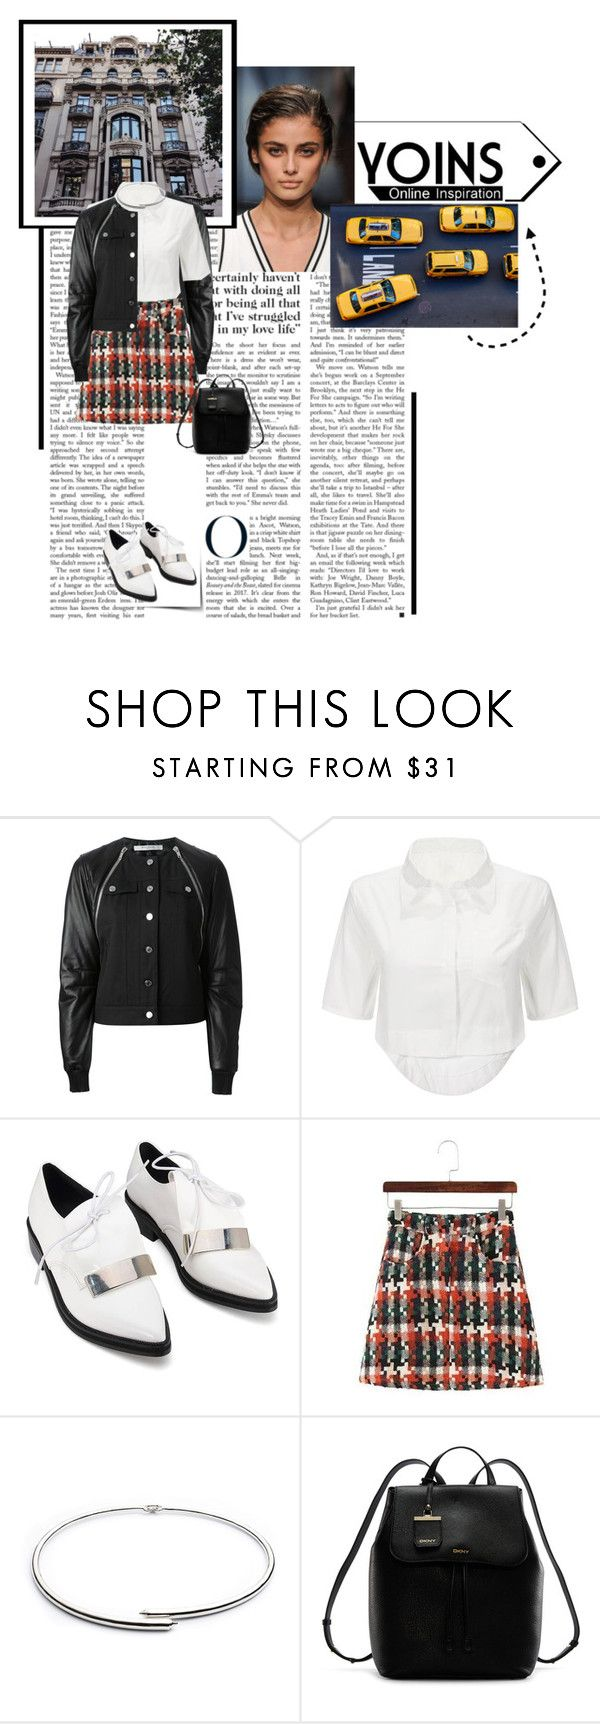 """""""Yoins Mini"""" by daniellerose14 ❤ liked on Polyvore featuring Chanel, Givenchy, Eddie Borgo and DKNY"""